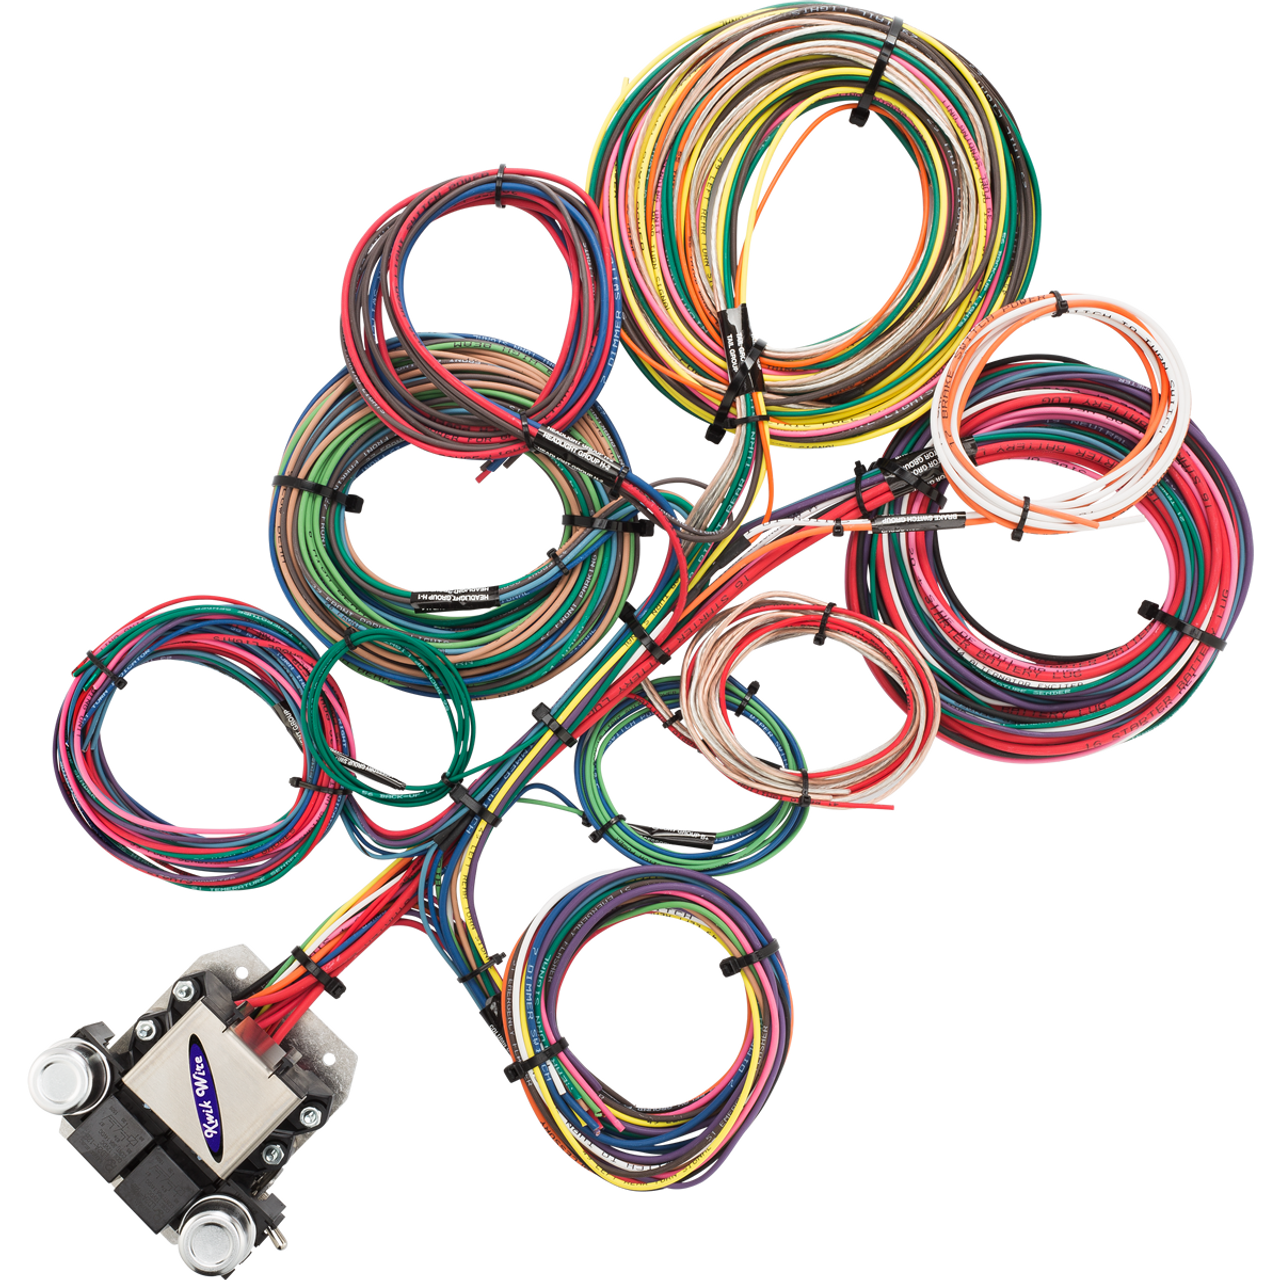 8 circuit ford wire harness kwikwire com electrify your ride